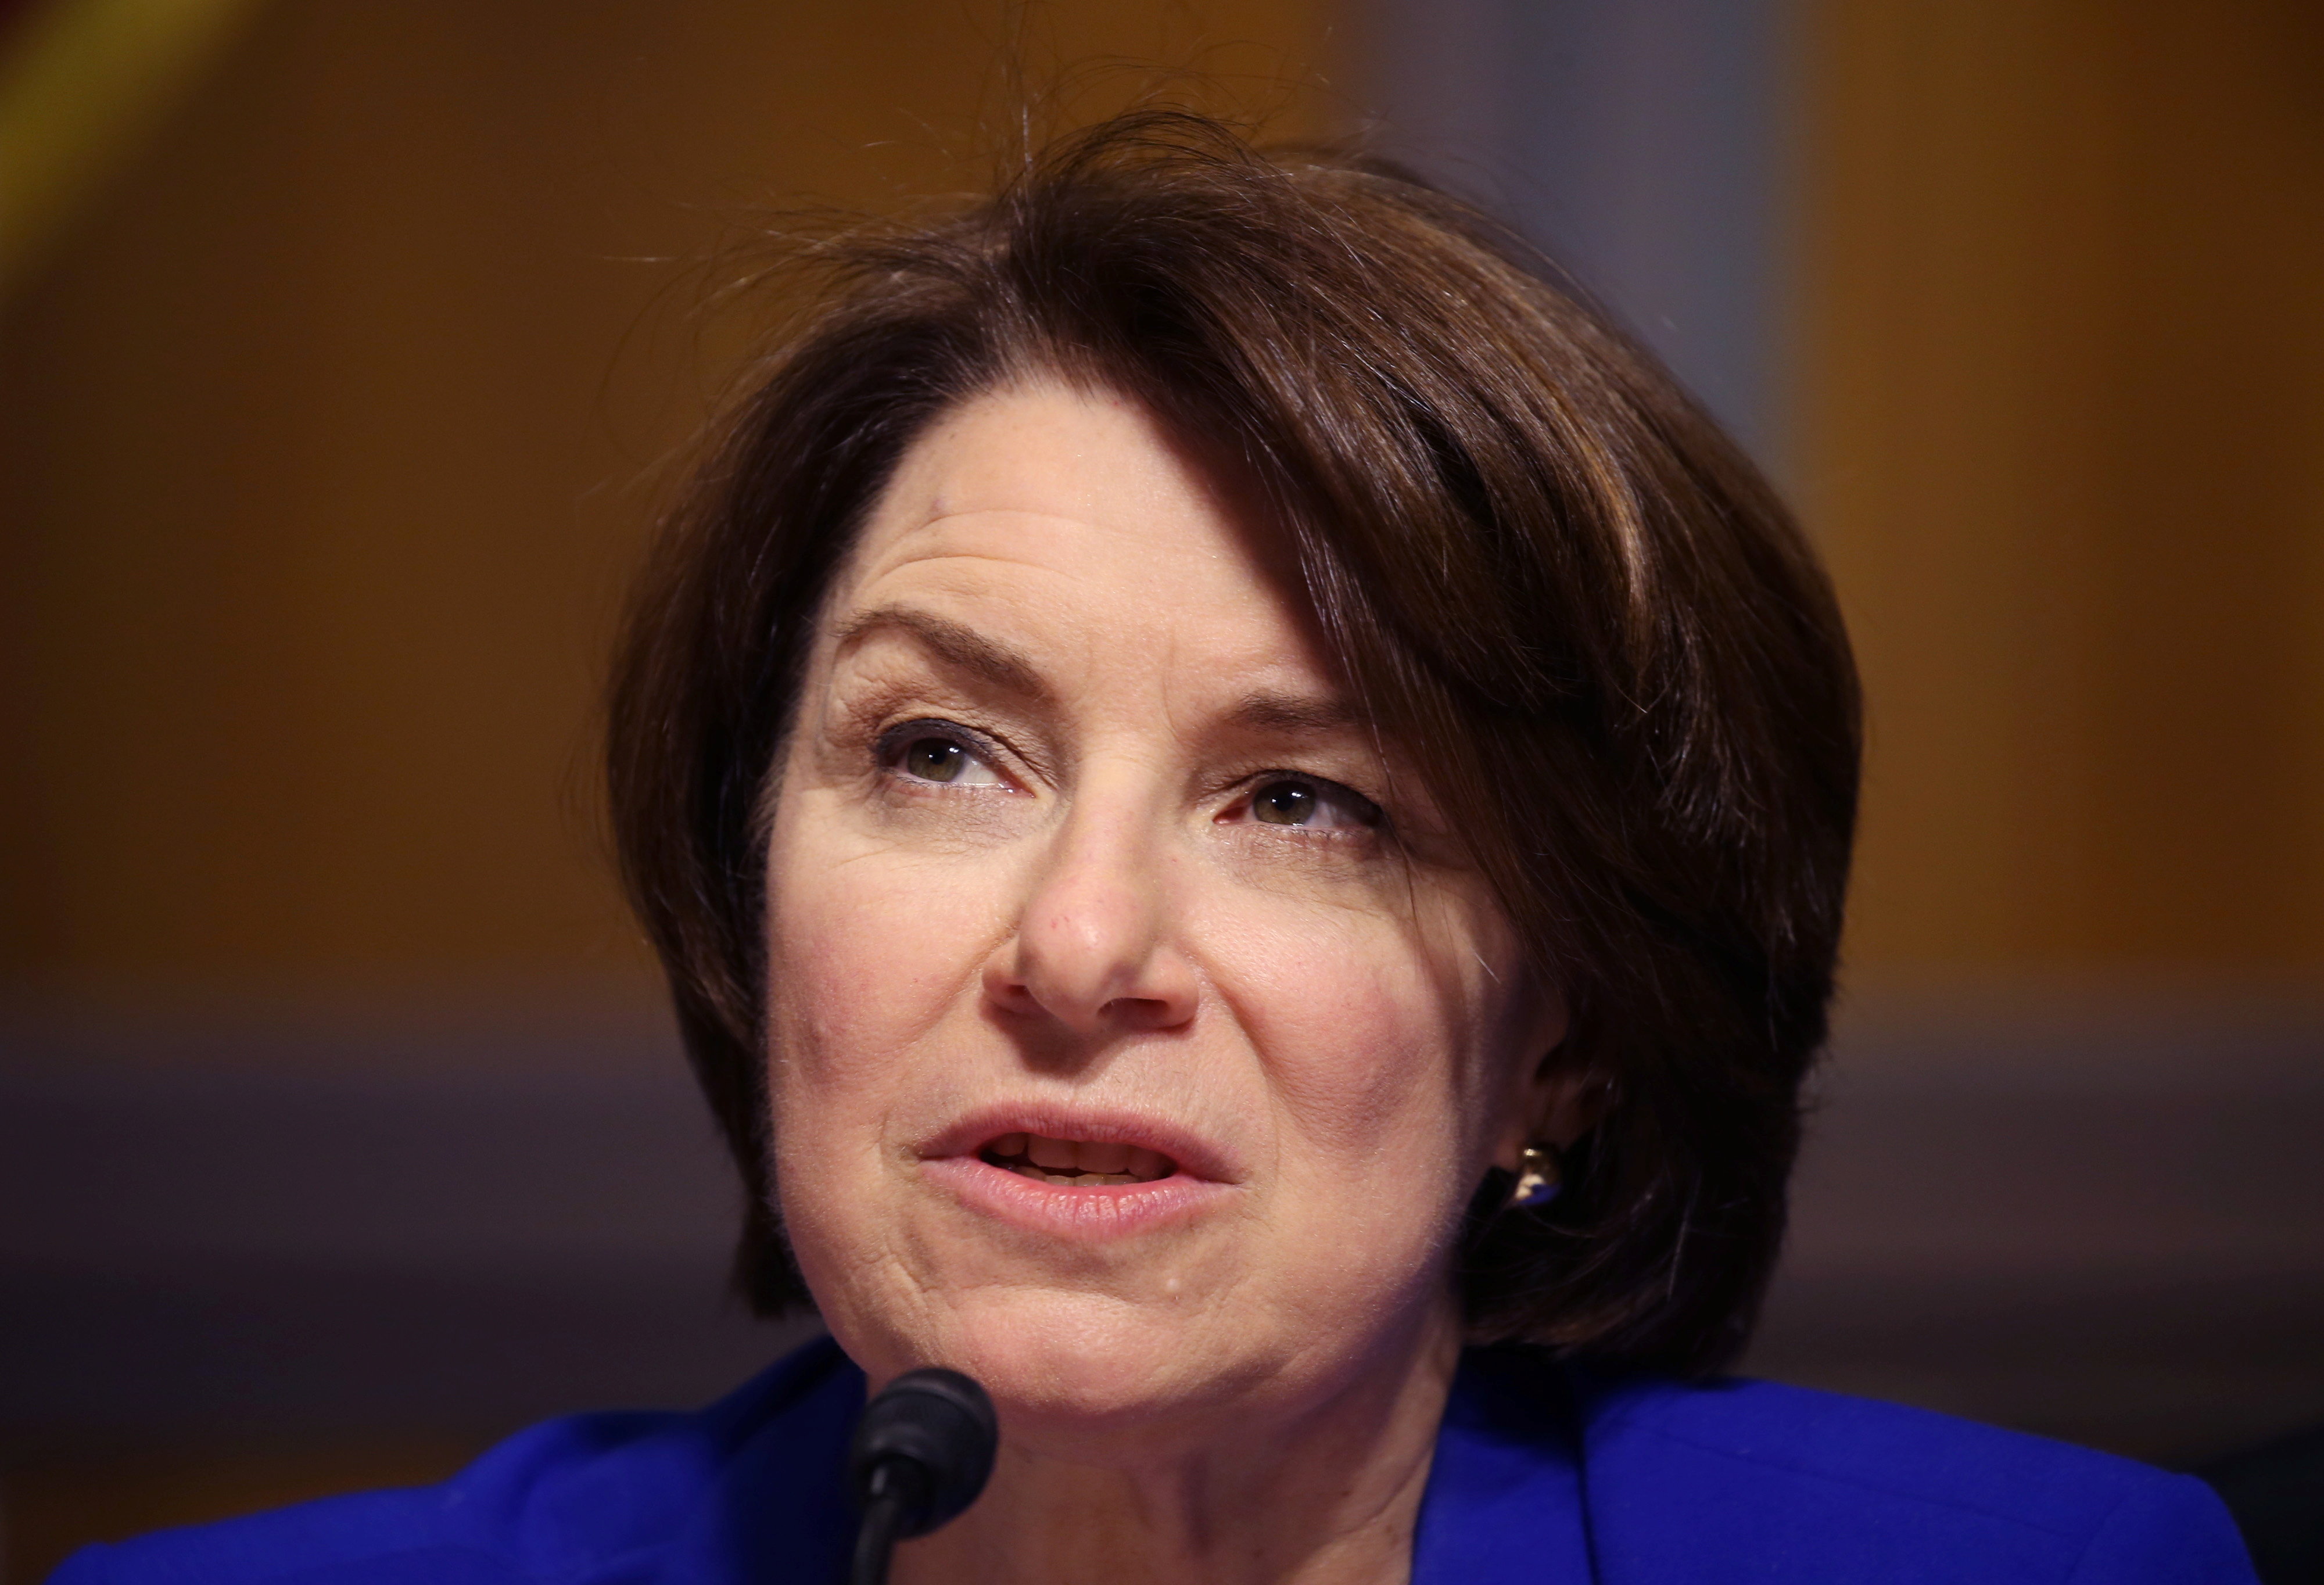 Sen. Amy Klobuchar, D-MN, asks questions during a hearing of the Senate Judiciary Subcommittee on Privacy, Technology, and the Law, at the U.S. Capitol in Washington DC, U.S., April 27, 2021. Tasos Katopodis/Pool via REUTERS